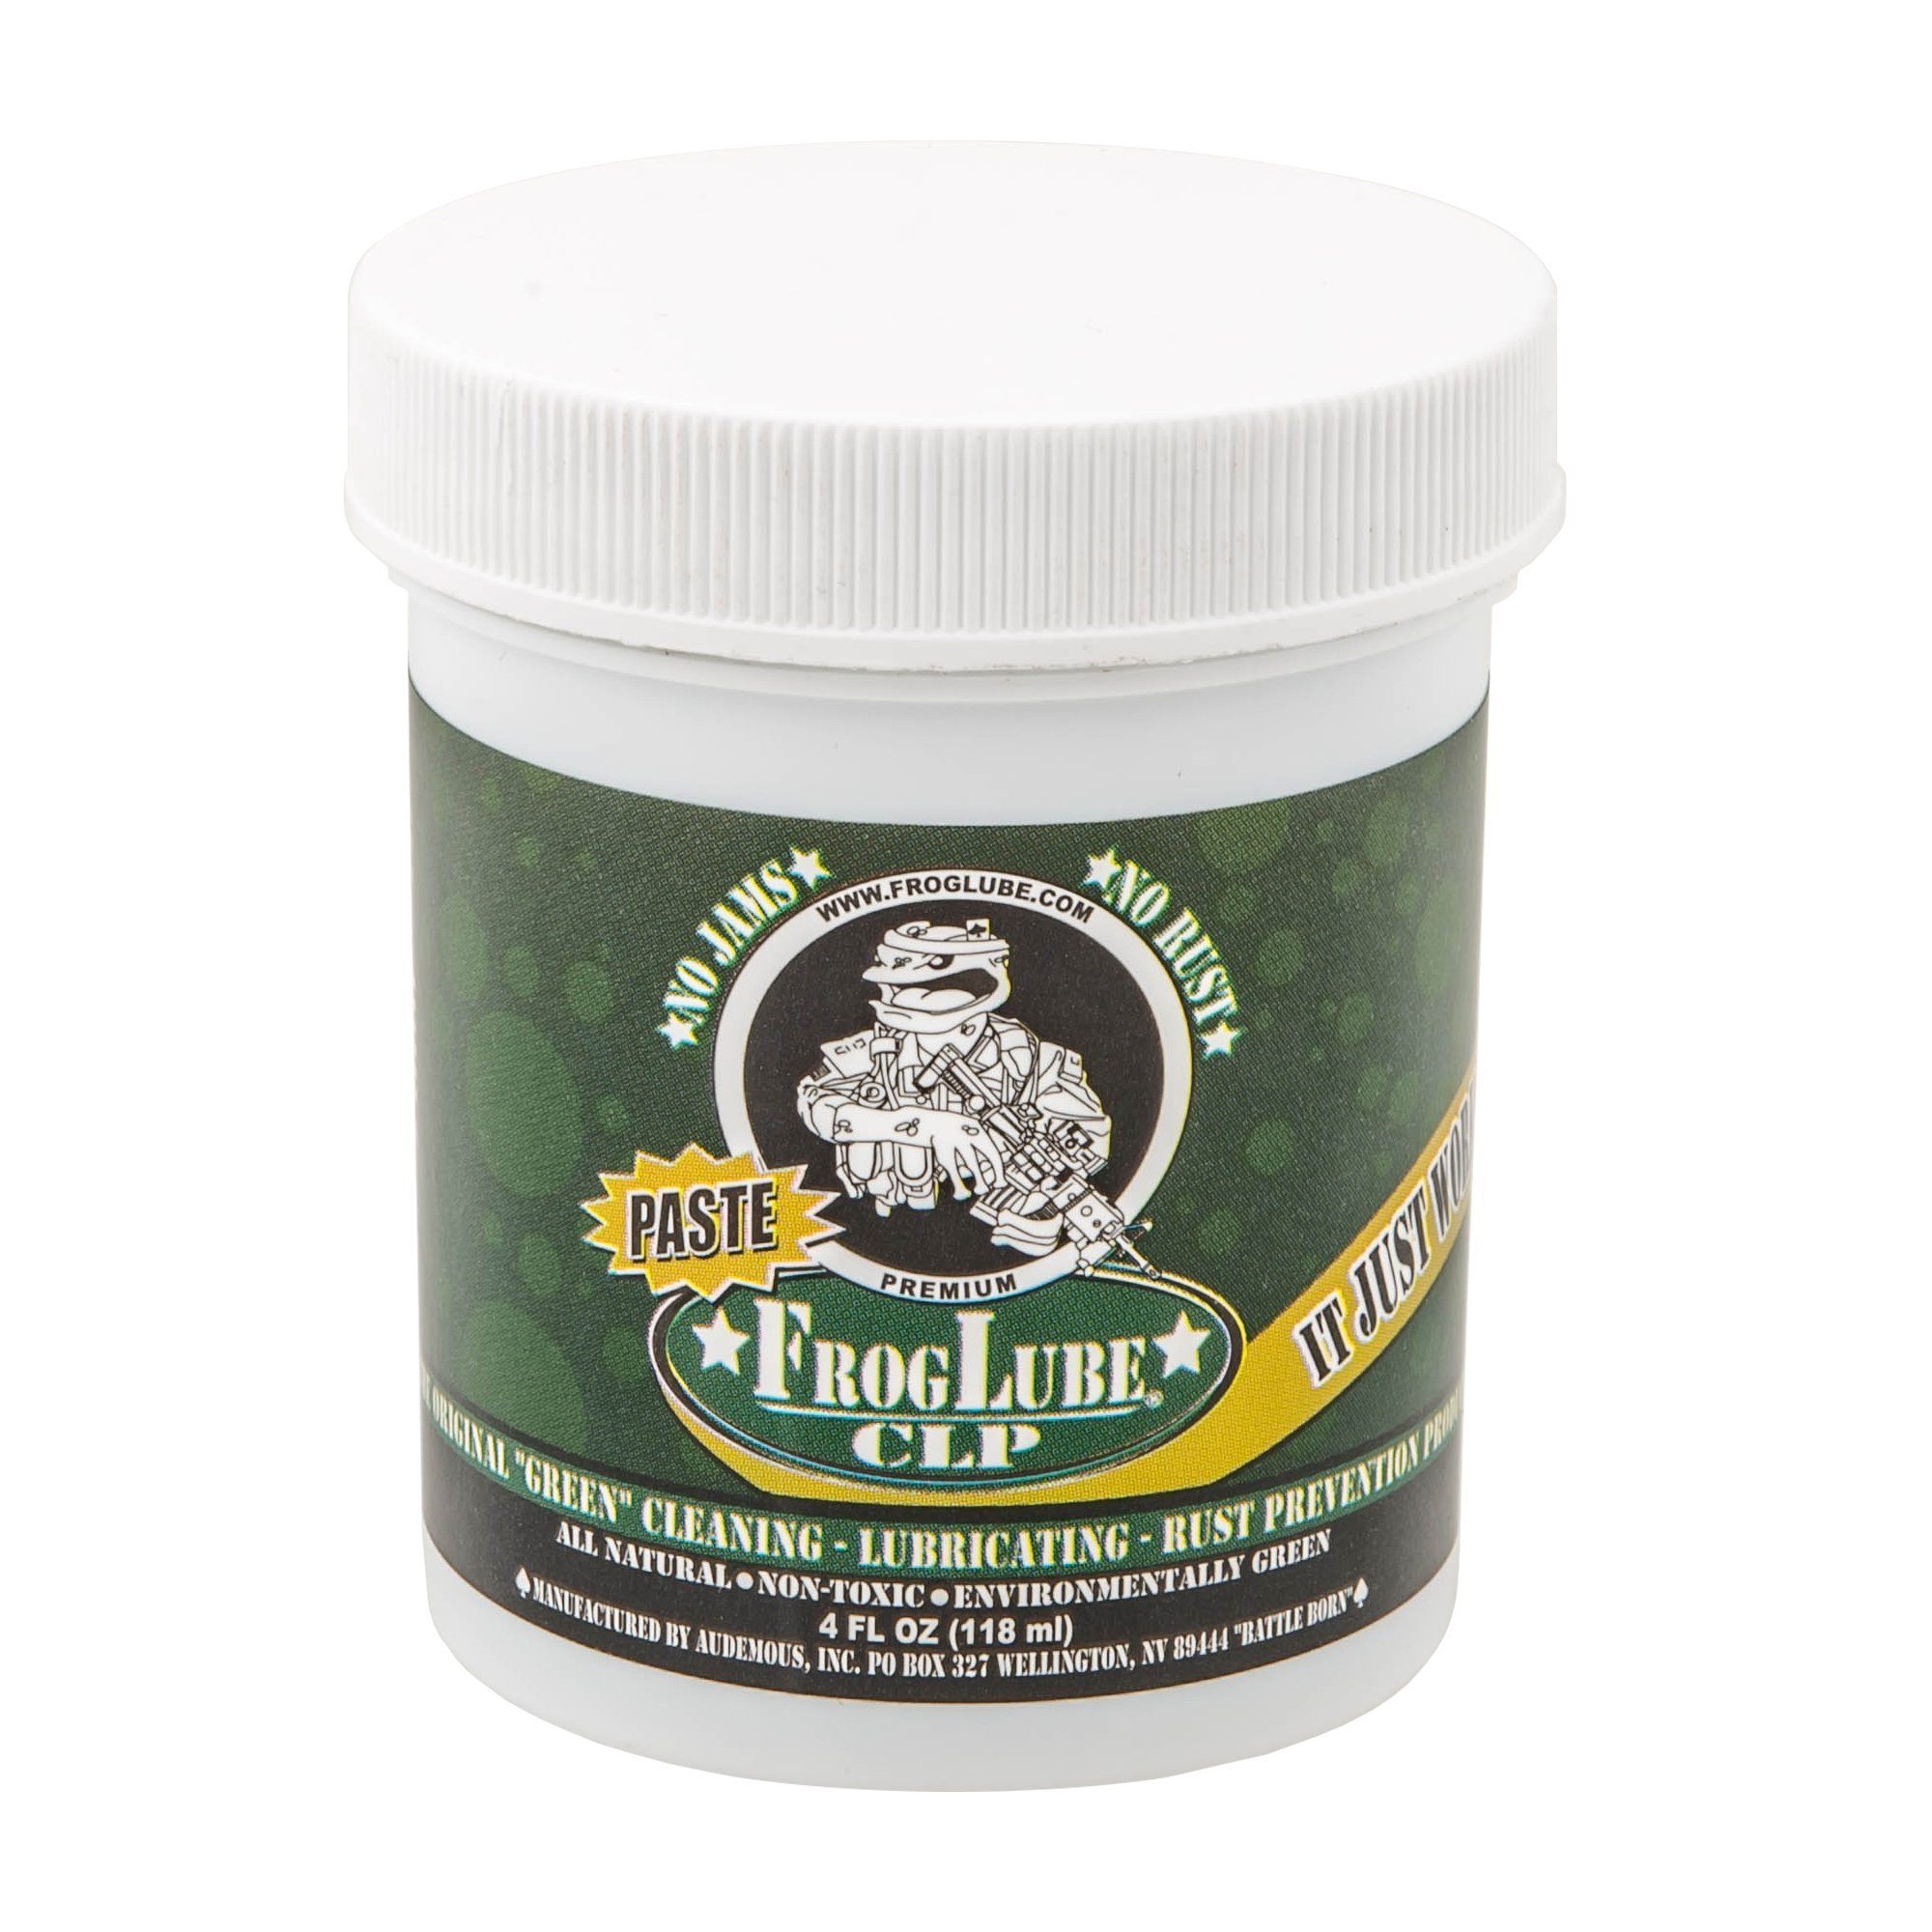 Froglube CLP 4 Oz. Tub of Paste Gun Cleaner Lubricant Protectant by Frog Lube